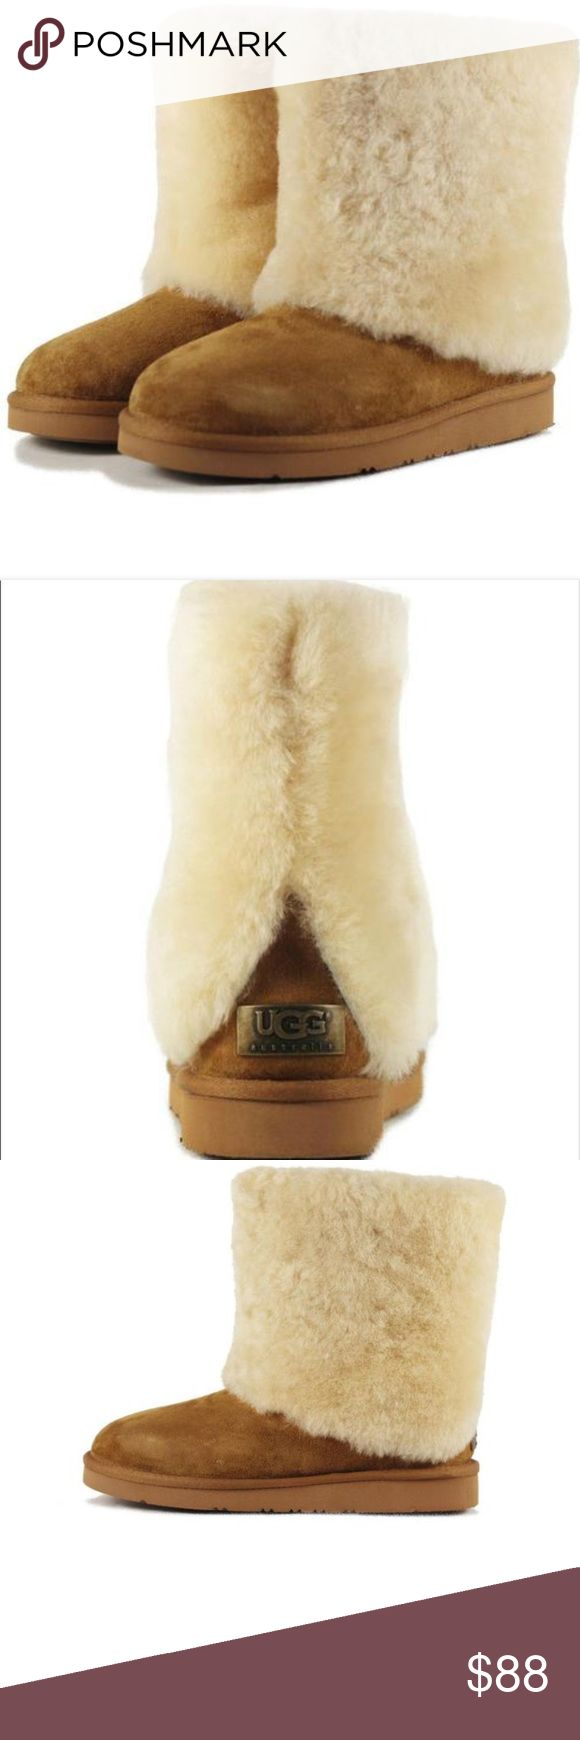 Folded Over Uggs Totally new uggs worn a few times but hardly noticeable UGG Shoes